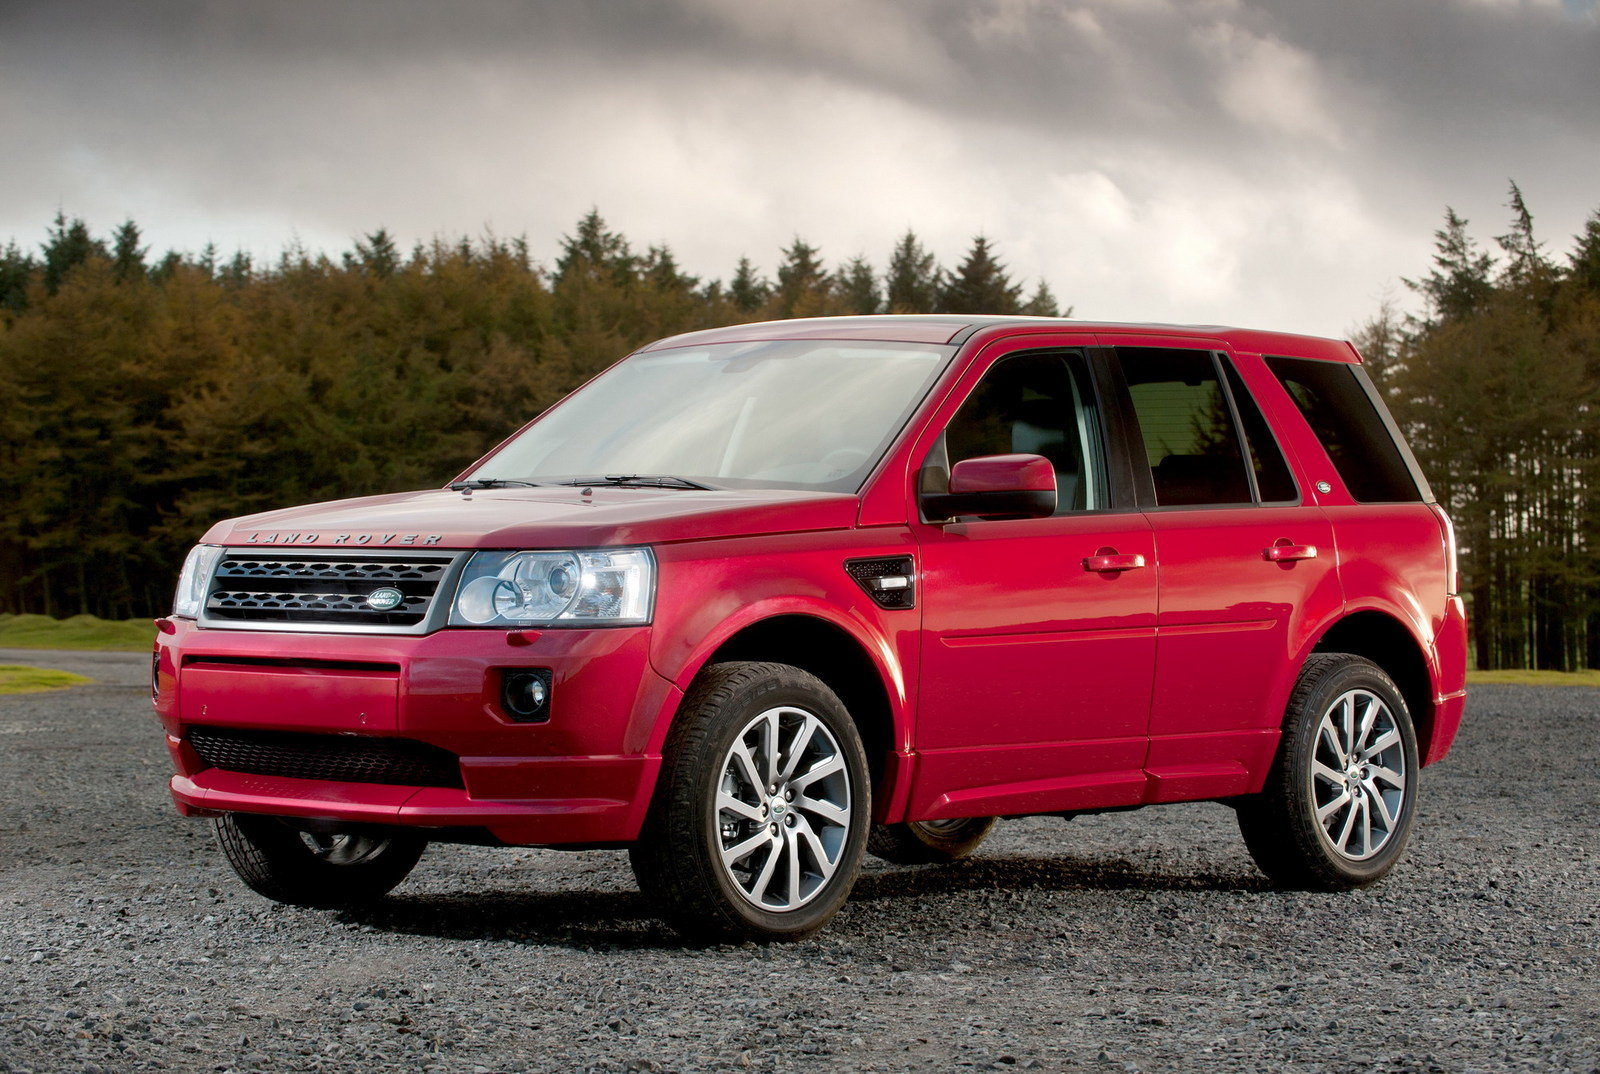 2011 land rover freelander 2 sd4 sport limited edition review top speed. Black Bedroom Furniture Sets. Home Design Ideas